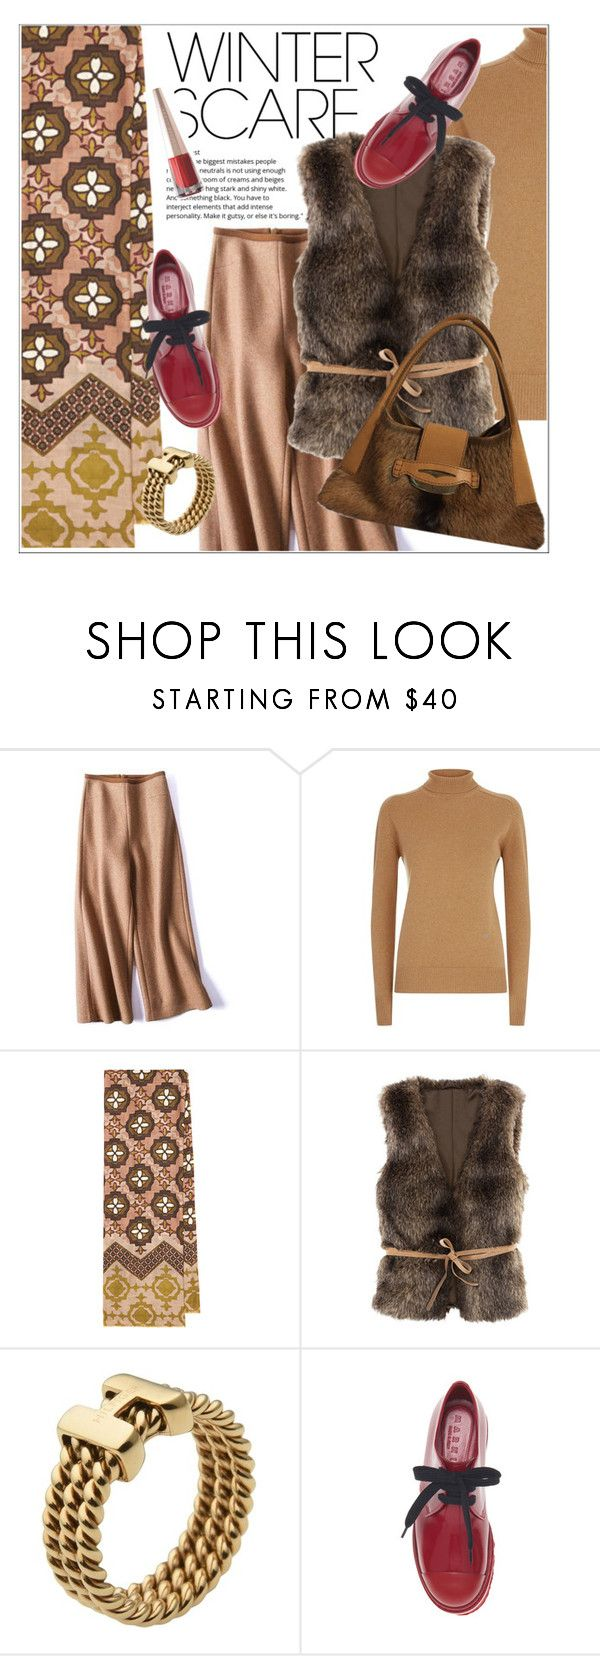 """""""Winter Scarf"""" by vinograd24 ❤ liked on Polyvore featuring Victoria Beckham, Tommy Hilfiger, Tod's, Puma and winterscarf"""